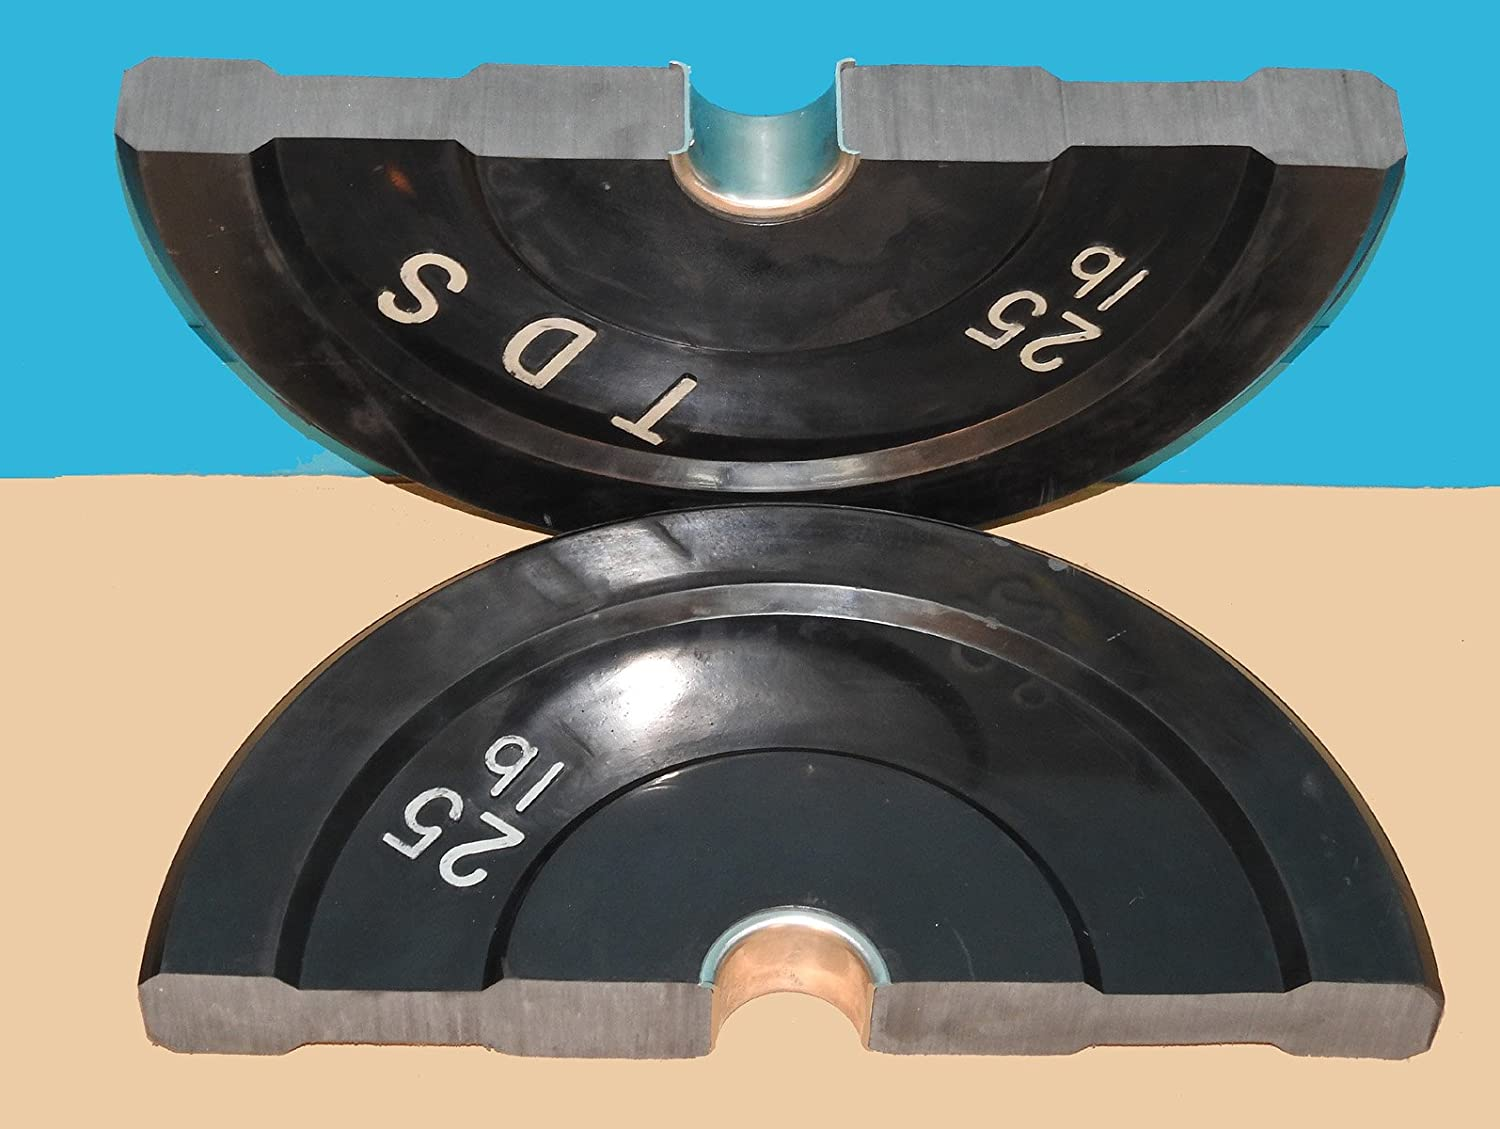 TDS 50lb Virgin Rubber Bumper Plate set consists of 2-25lb without steel plates inside. Designed for CrossFit workout and Fitness Training.